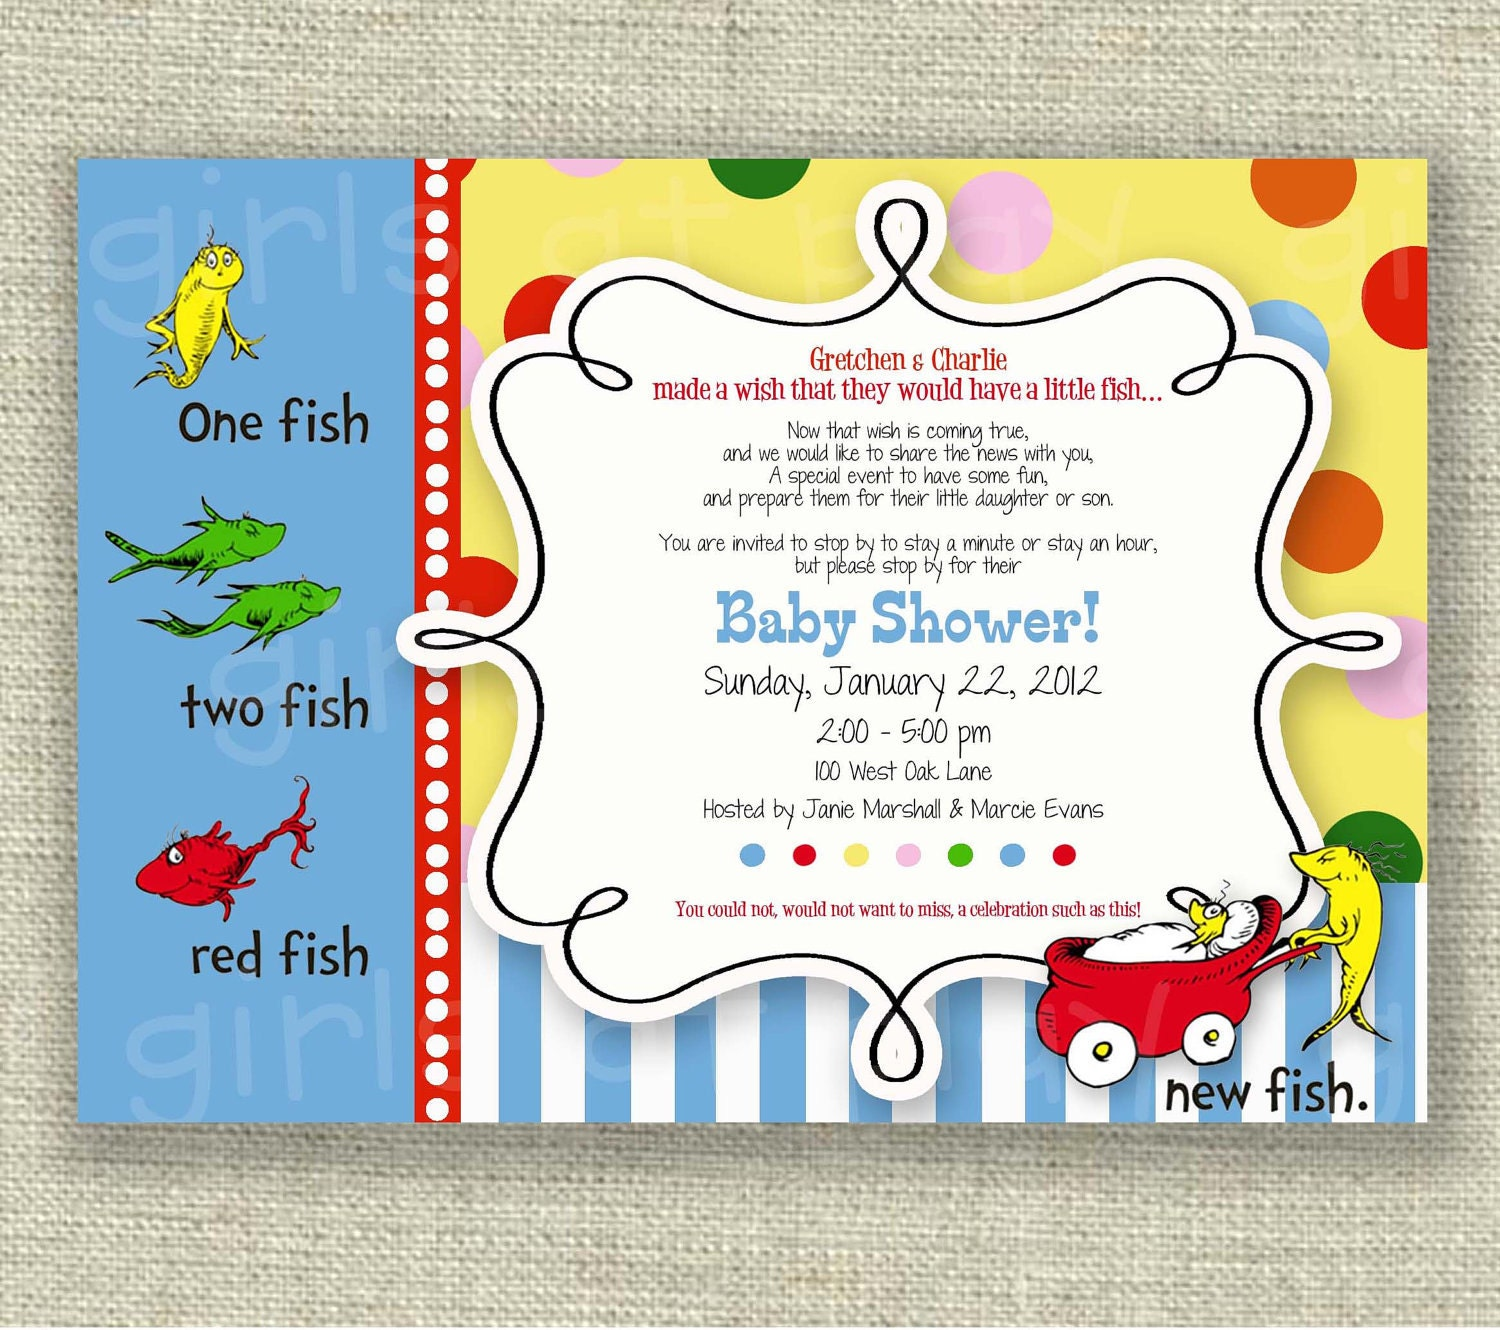 Baby Shower For One ~ Dr seuss baby shower invitation one fish two boy or girl